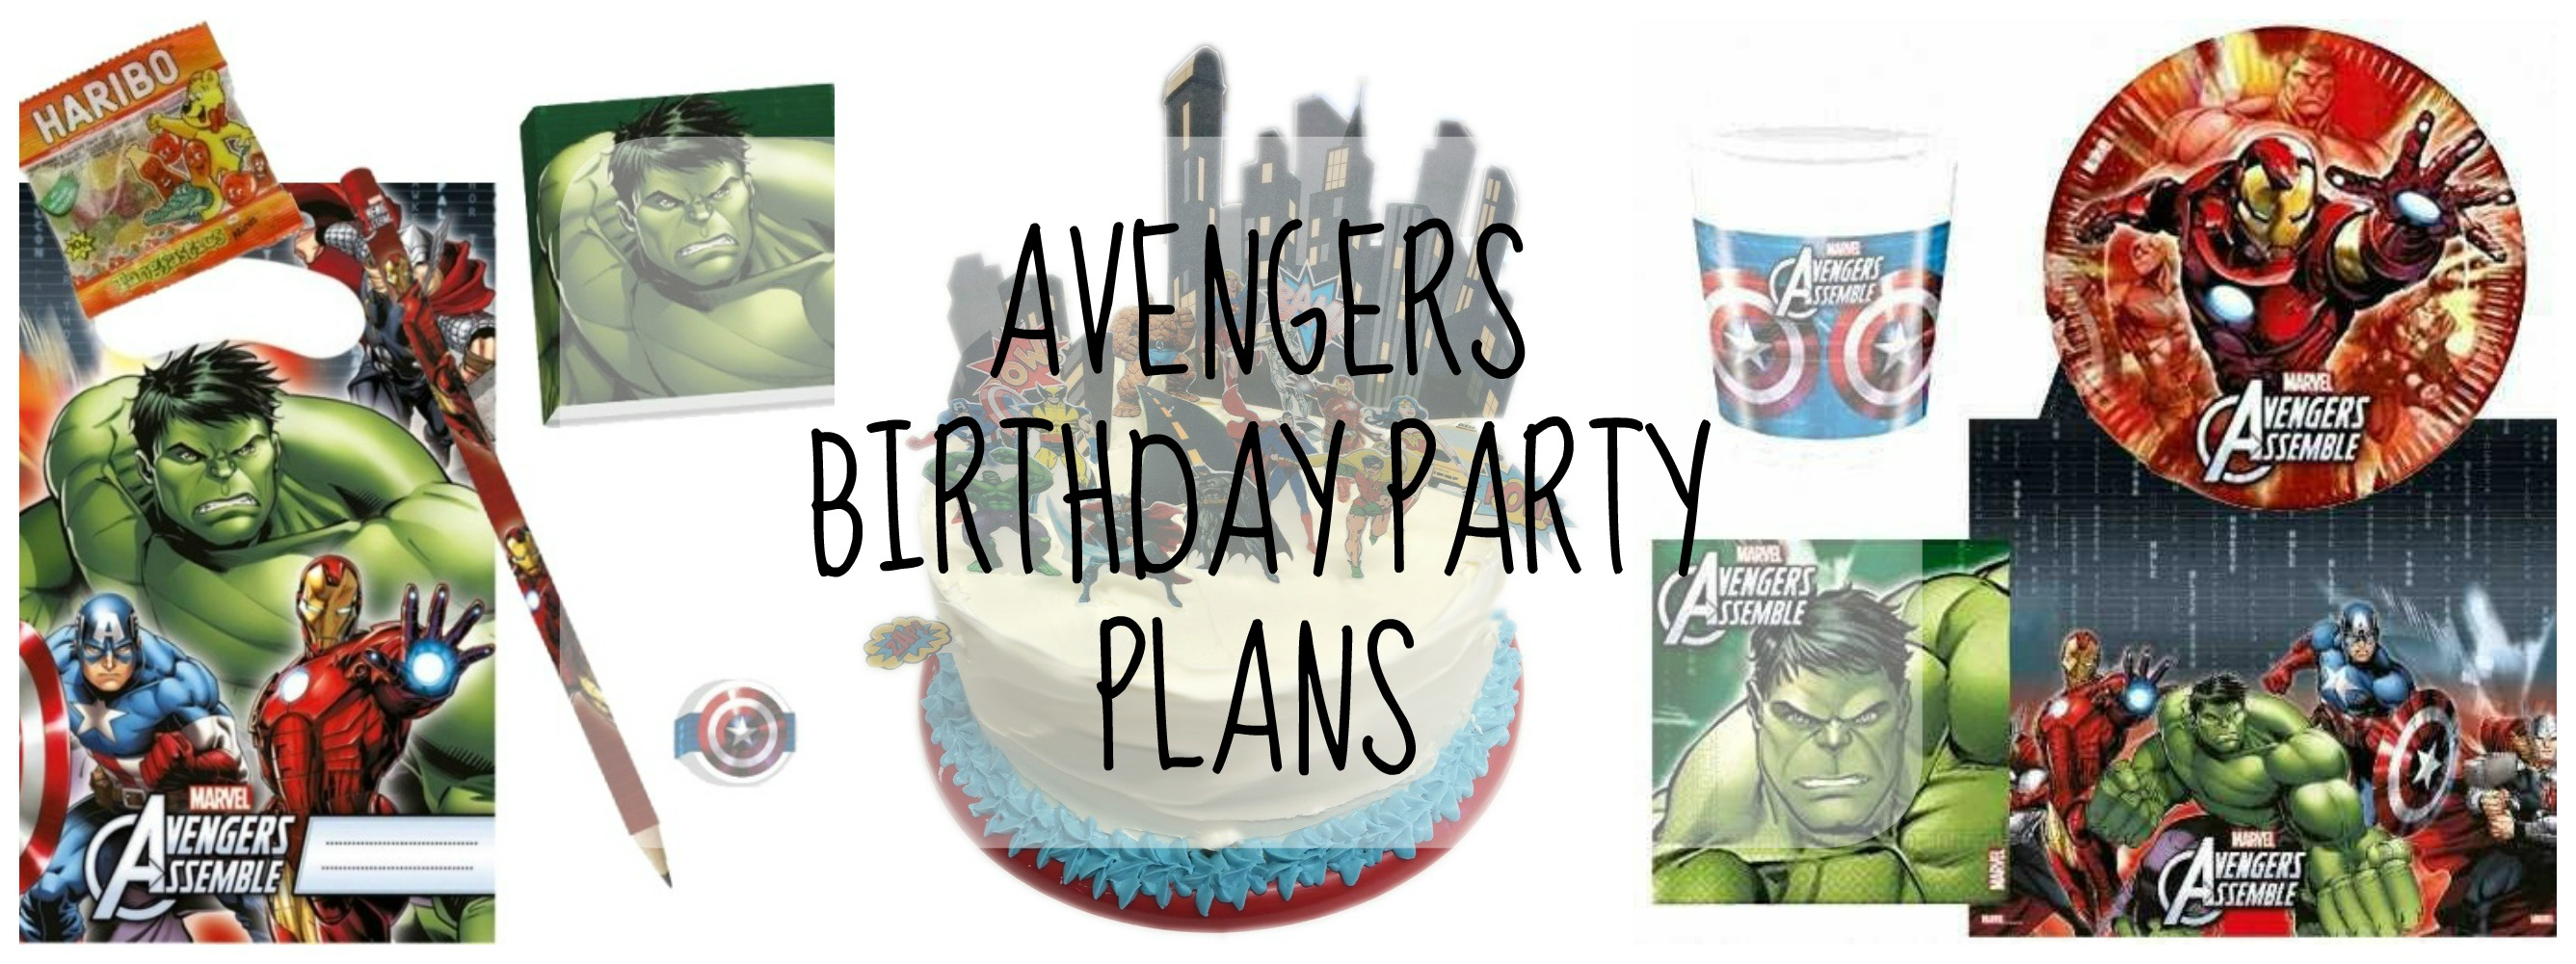 Little Lamb s Avengers 3rd Birthday Party Plans Lamb & Bear